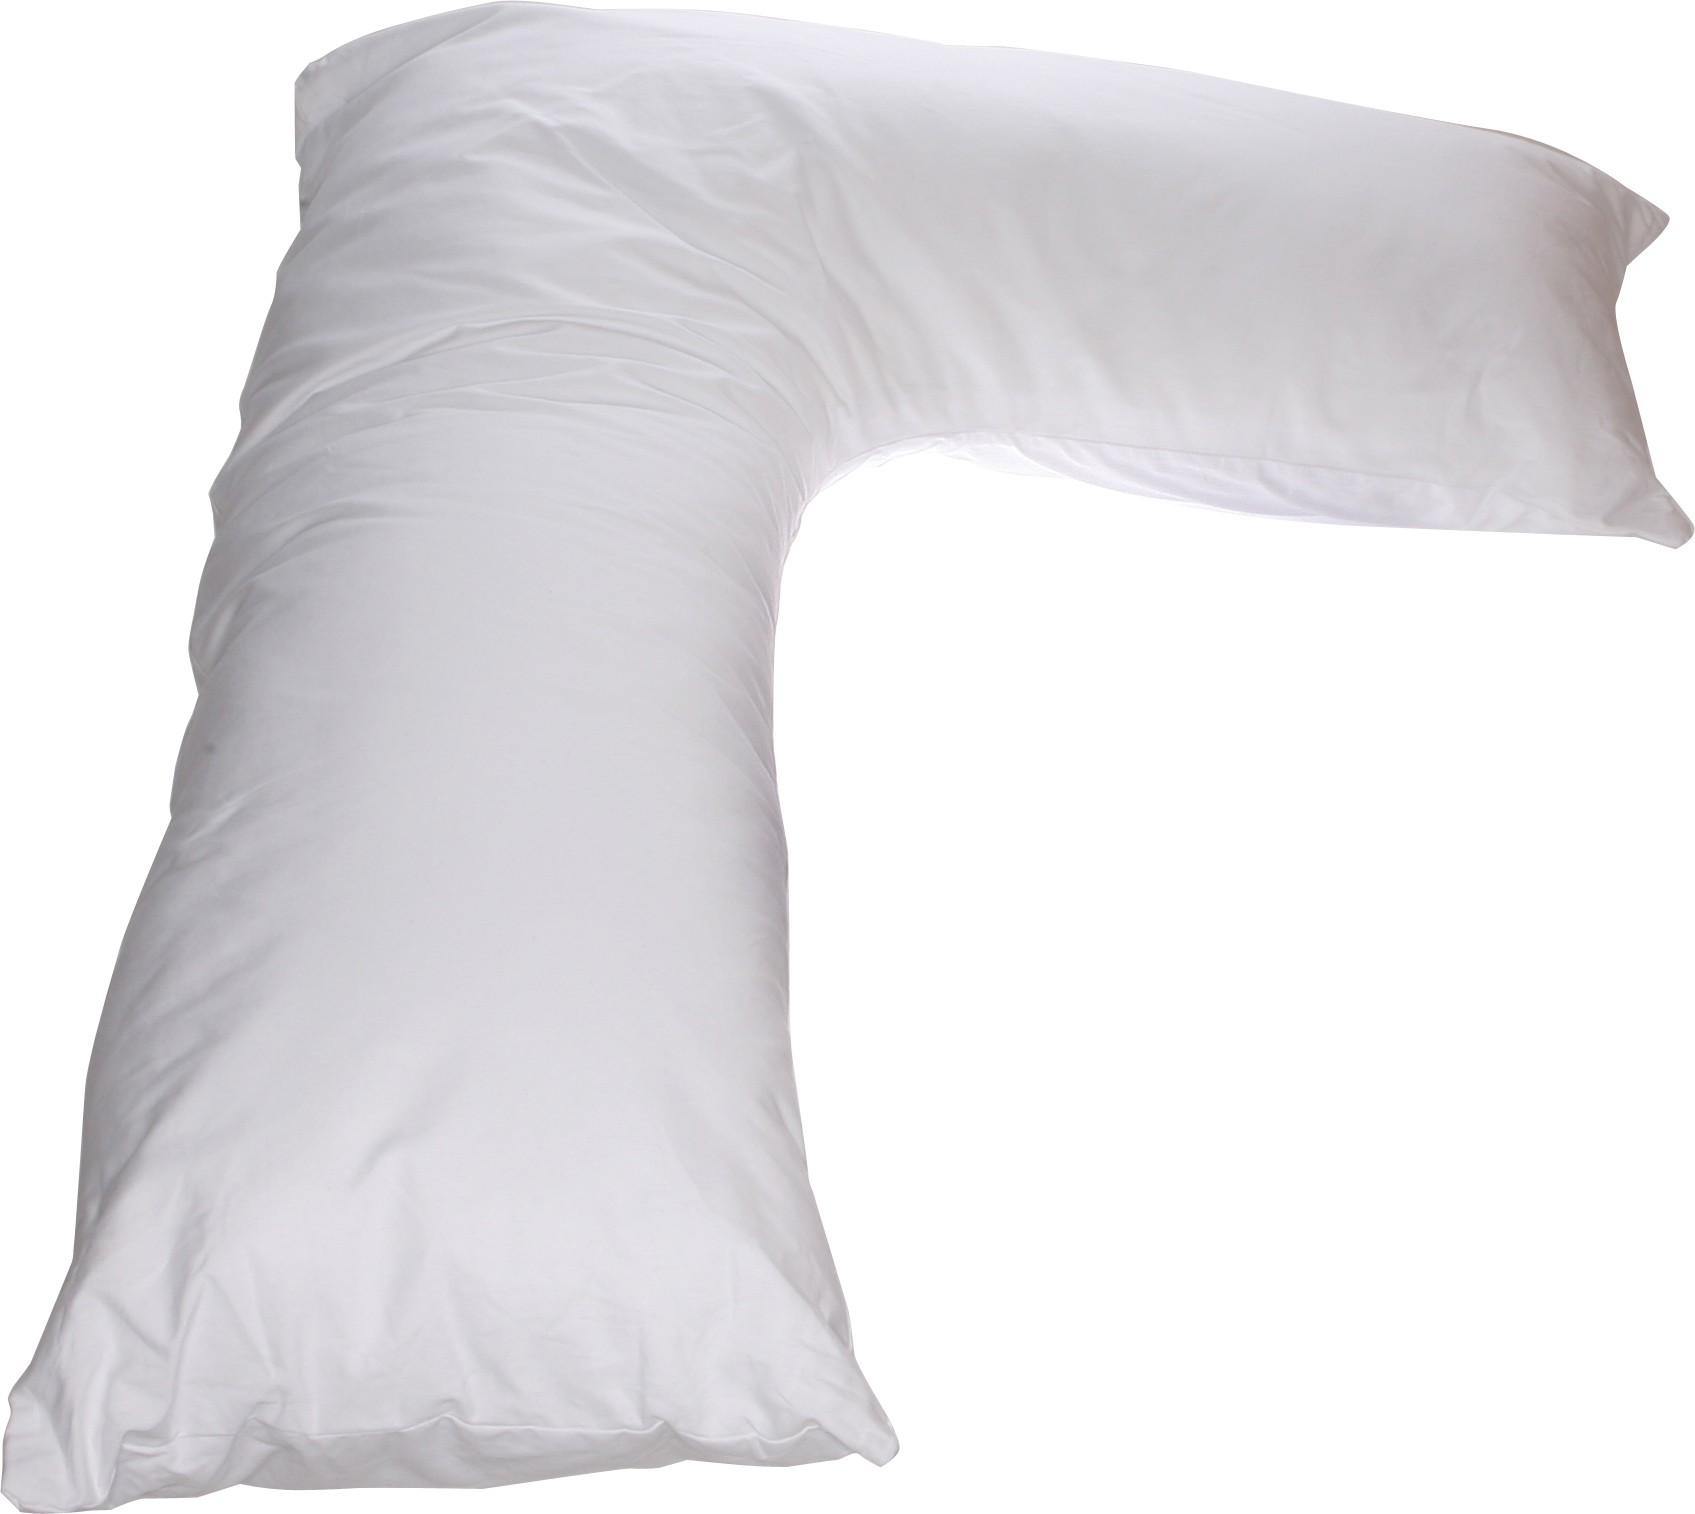 main pillow pillows comfort for l long sleeper sspl white side body pregnant women